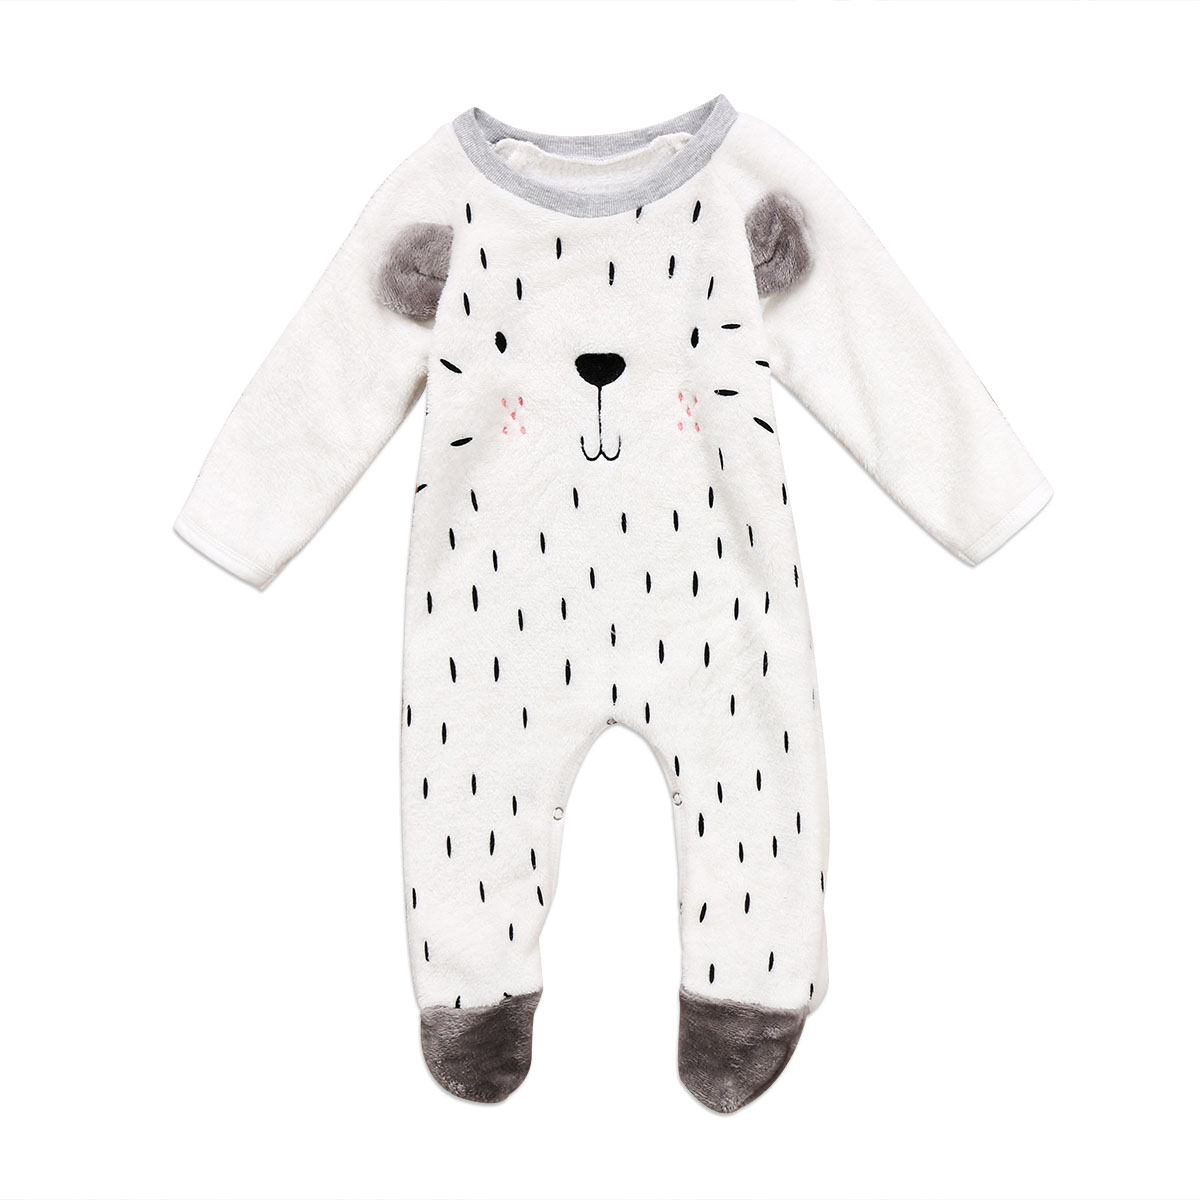 Cute Infant Toddler Kids Baby Boys Girl Winter Warm Soft Romper Tops Cotton Fur Bear Print Long Sleeve Rompers Jumpsuit Clothes